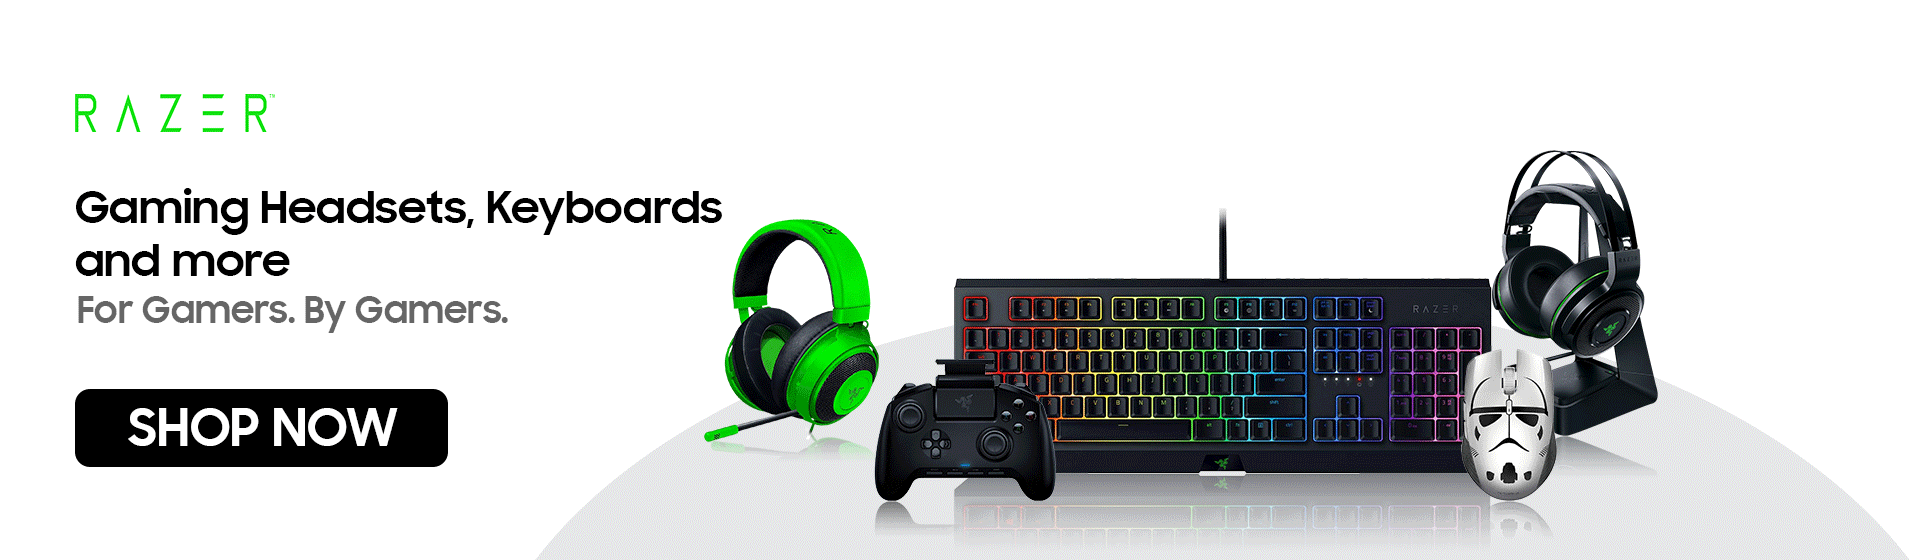 Razer Products | Gaming Headsets, Keyboards and more‎